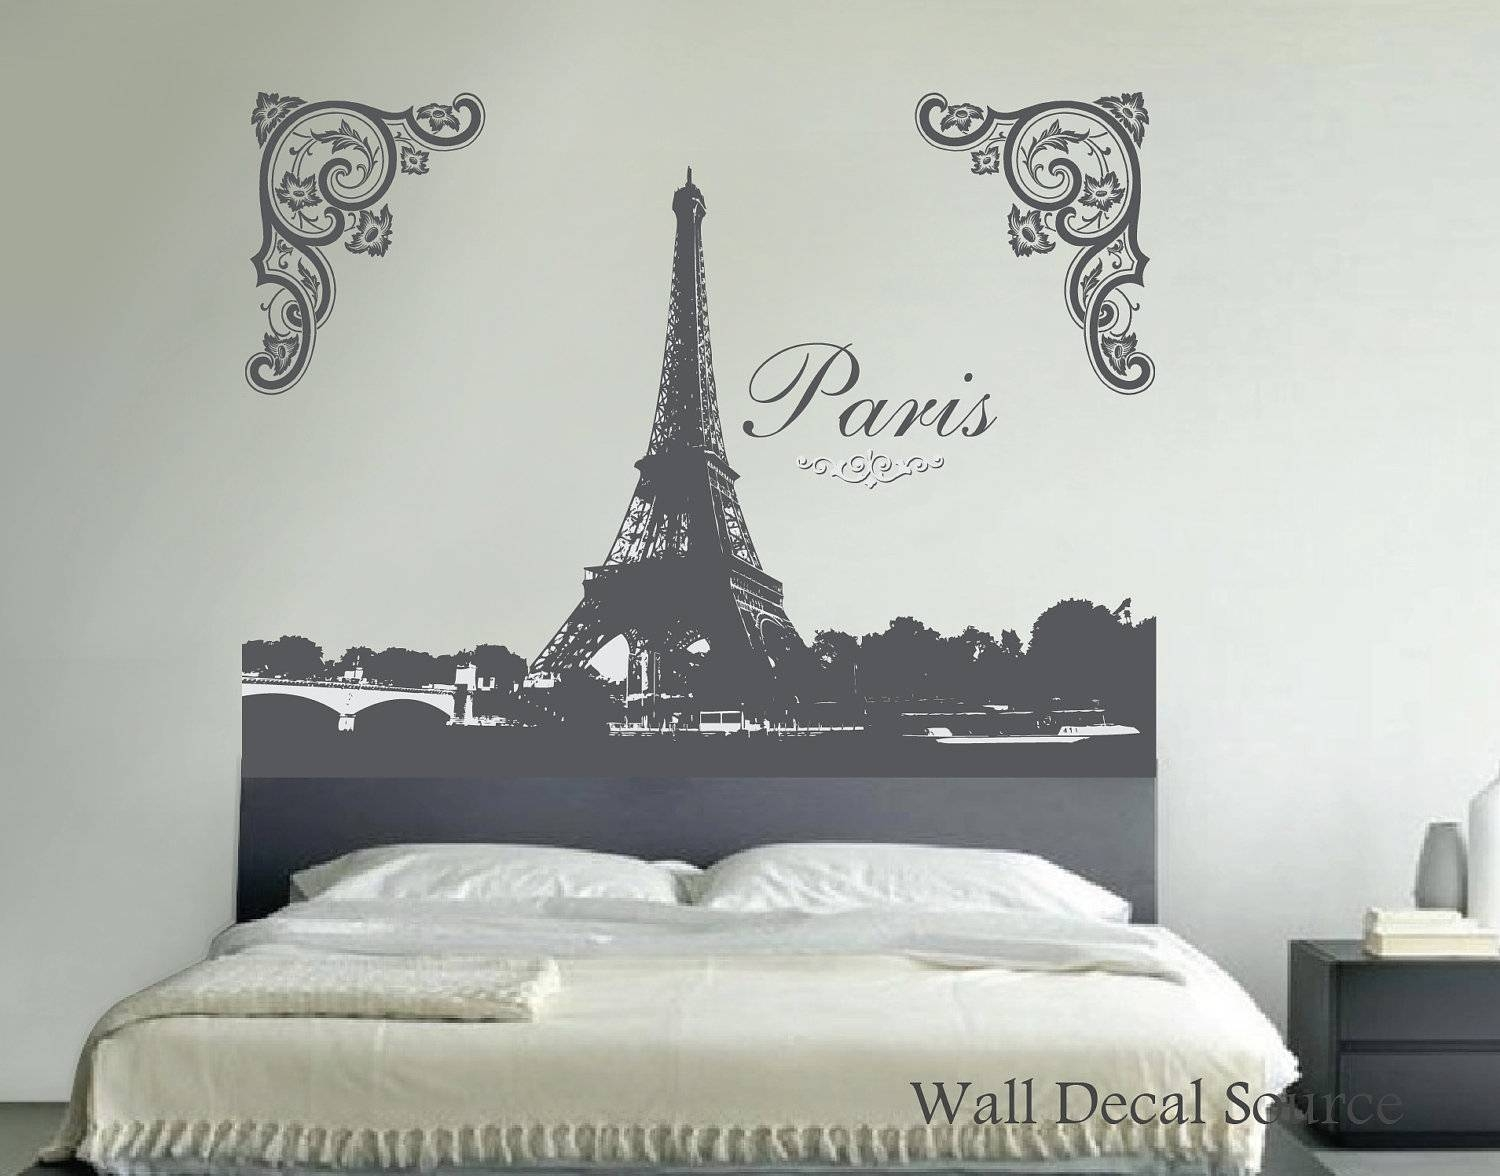 Eiffel Tower Print Best Picture Eiffel Tower Wall Art – Home Decor With Most Up To Date Metal Eiffel Tower Wall Art (View 14 of 30)